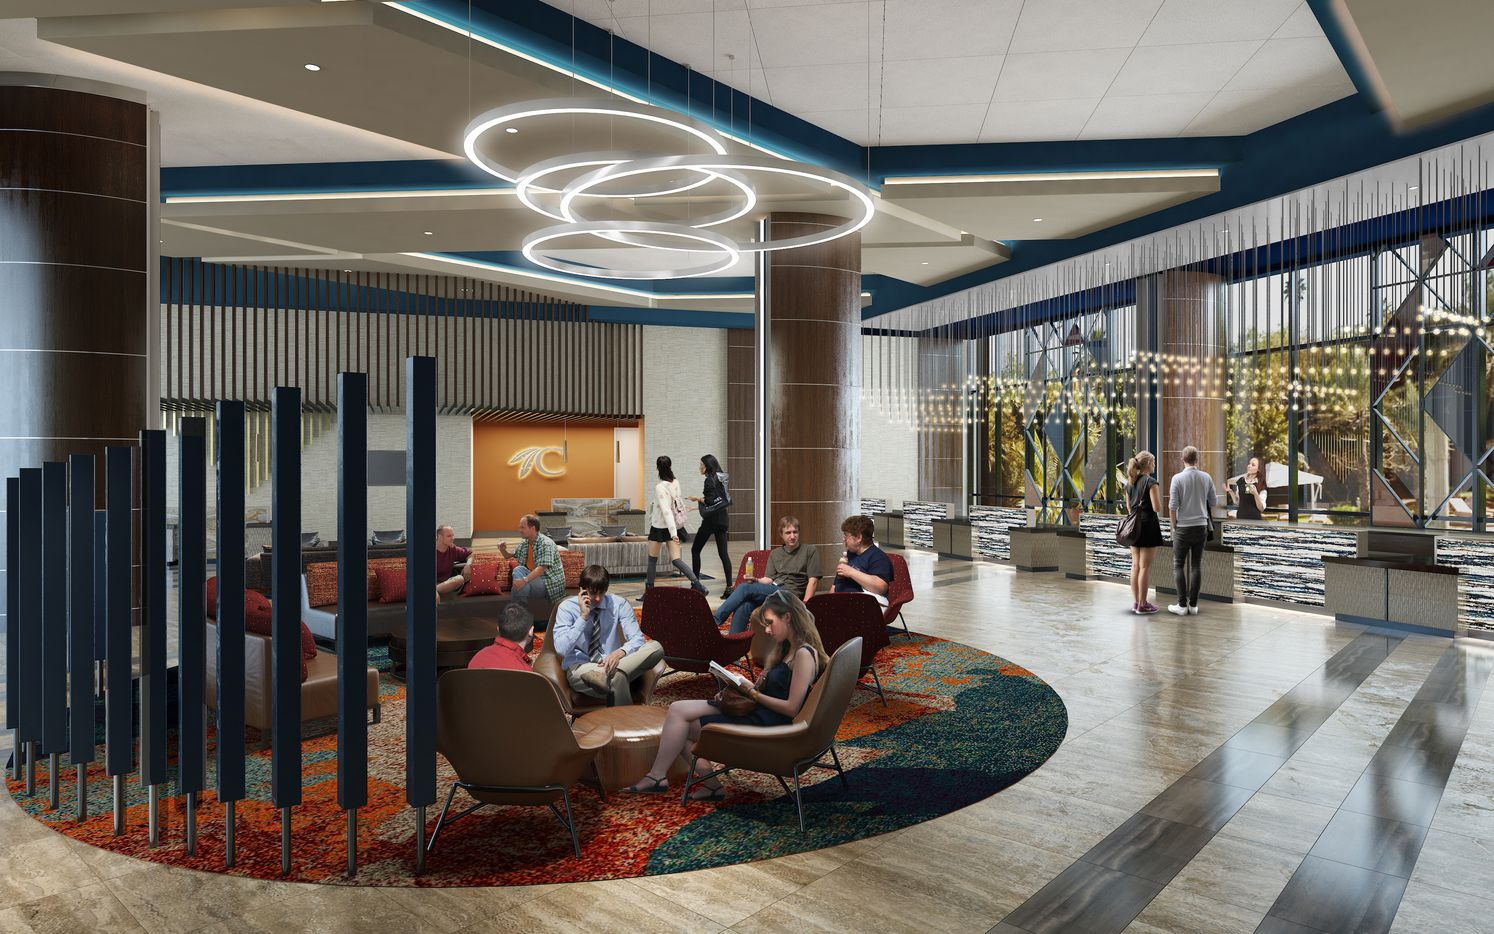 The lobby of the new Choctaw Casino & Resort addition in Durant, Okla north of Dallas.